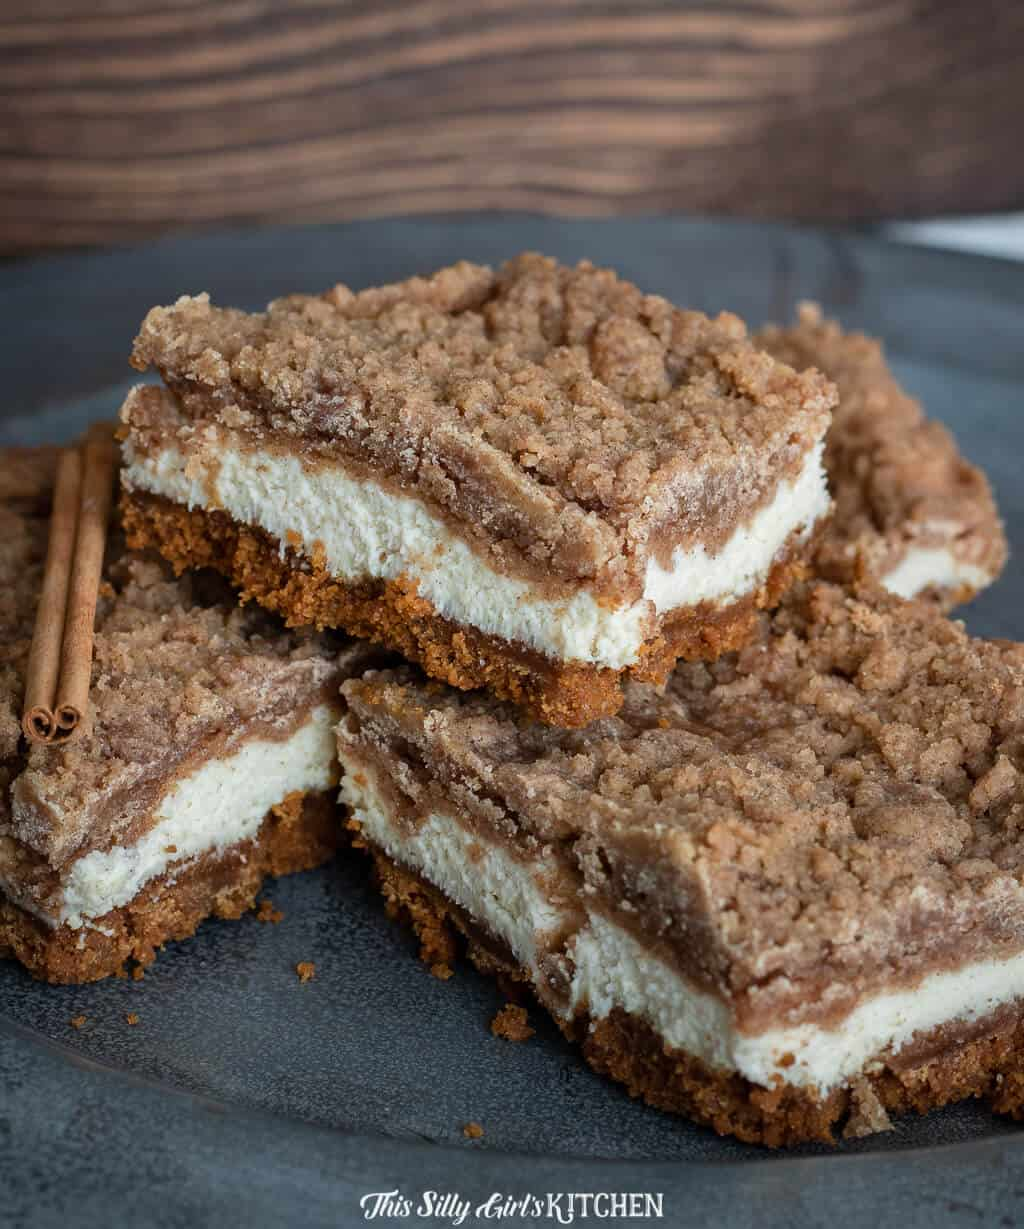 Snickerdoodle Bars stacked on top of one another on black plate.